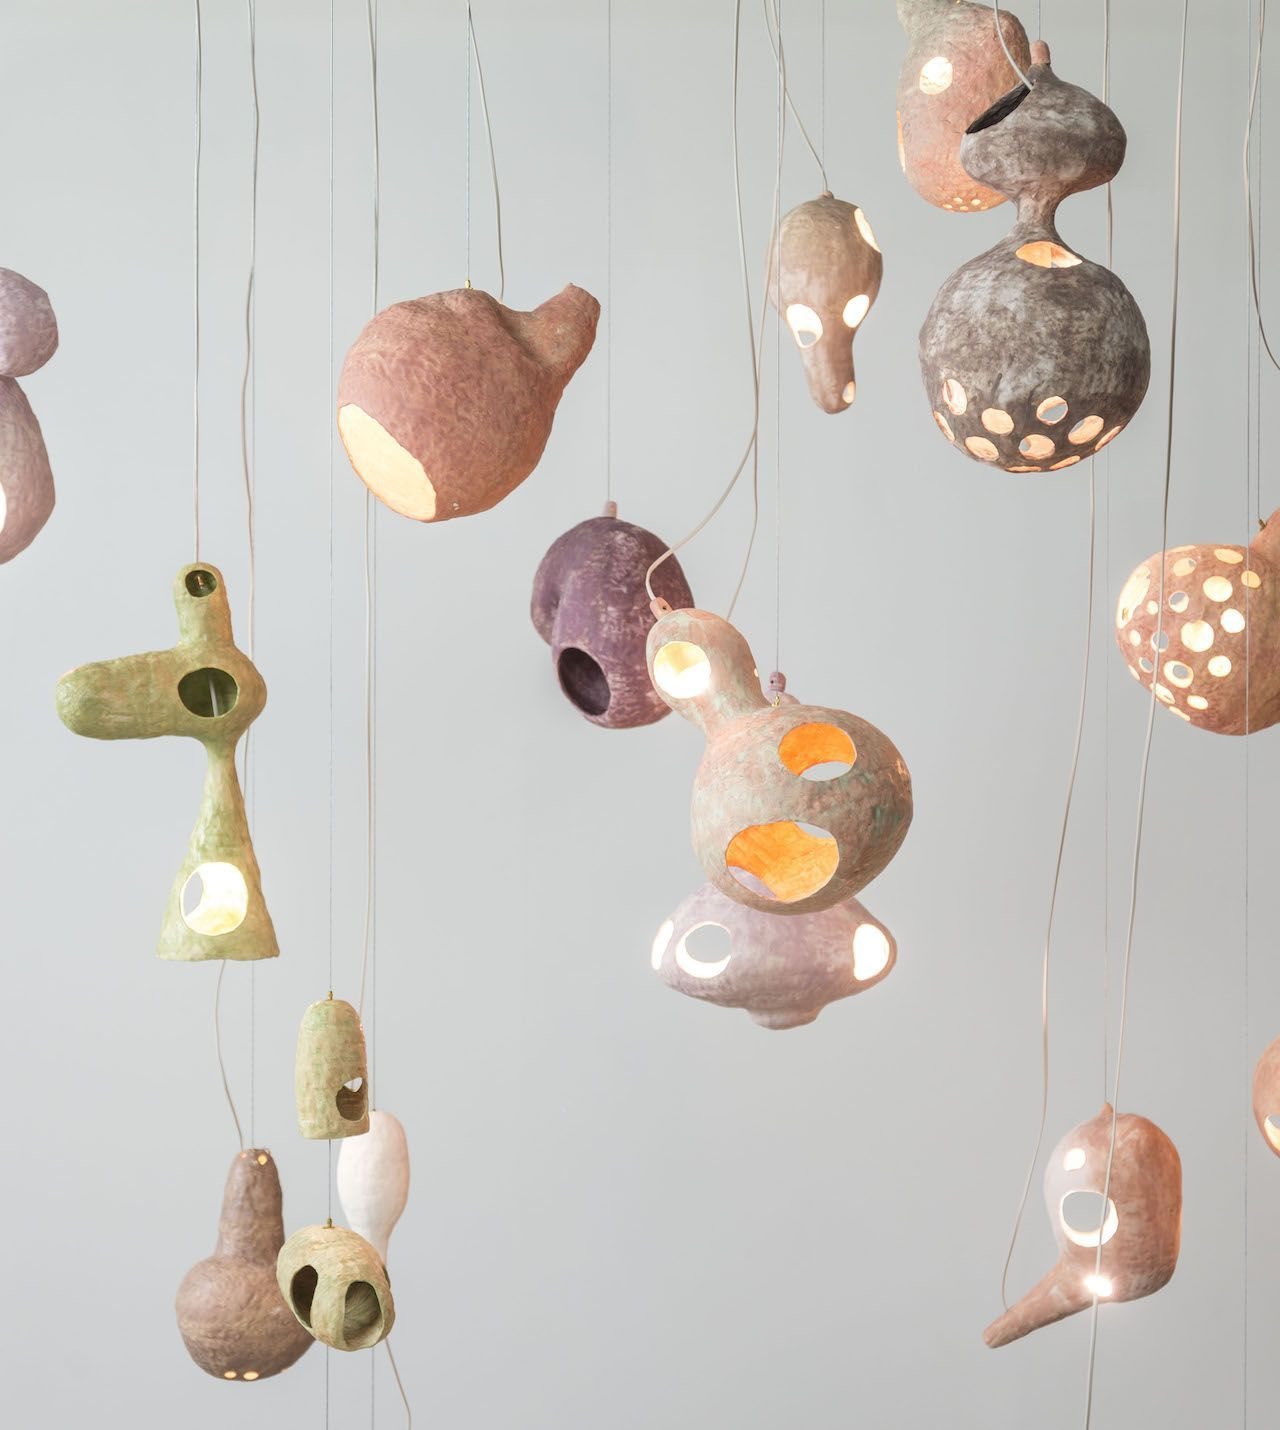 You See A Sheep Composition Of Lights Design Yuko Nishikawa 2019 Ynishikawa Homes In Space With An O Keramik Lampen Coole Beleuchtung Lampenschirm Gestell